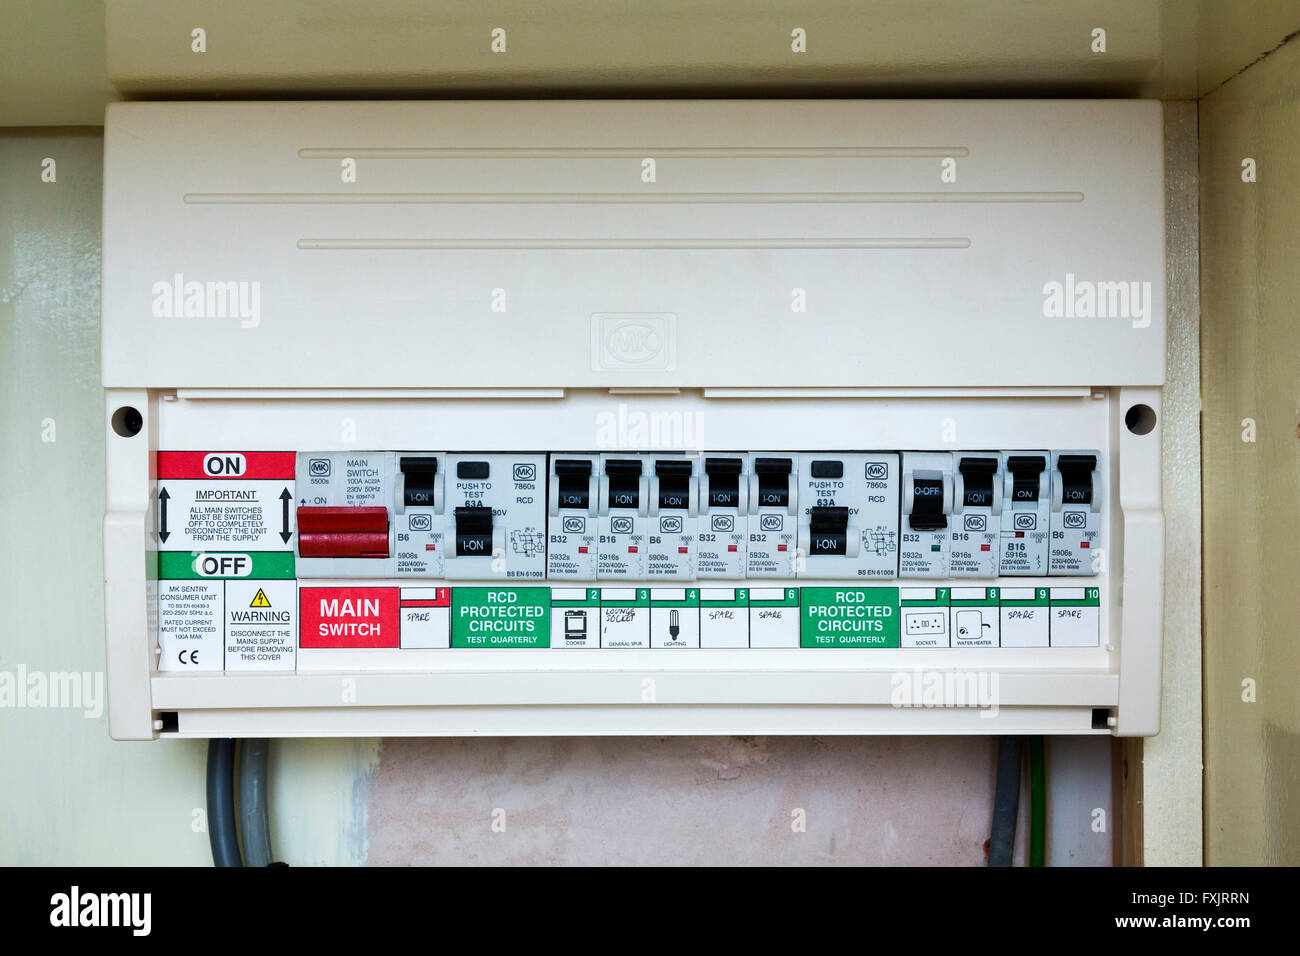 Main Fuse Box - Thegardenbar.co.uk • Main Fuse Box Tripping on main circuit box, main breaker panel, main breaker box, motor box, main panel box, main disconnect switch, main fuse house, light box, main electrical box, heater box, generator box, main terminal box, main fuse battery, circuit breaker box, main circuit breaker,